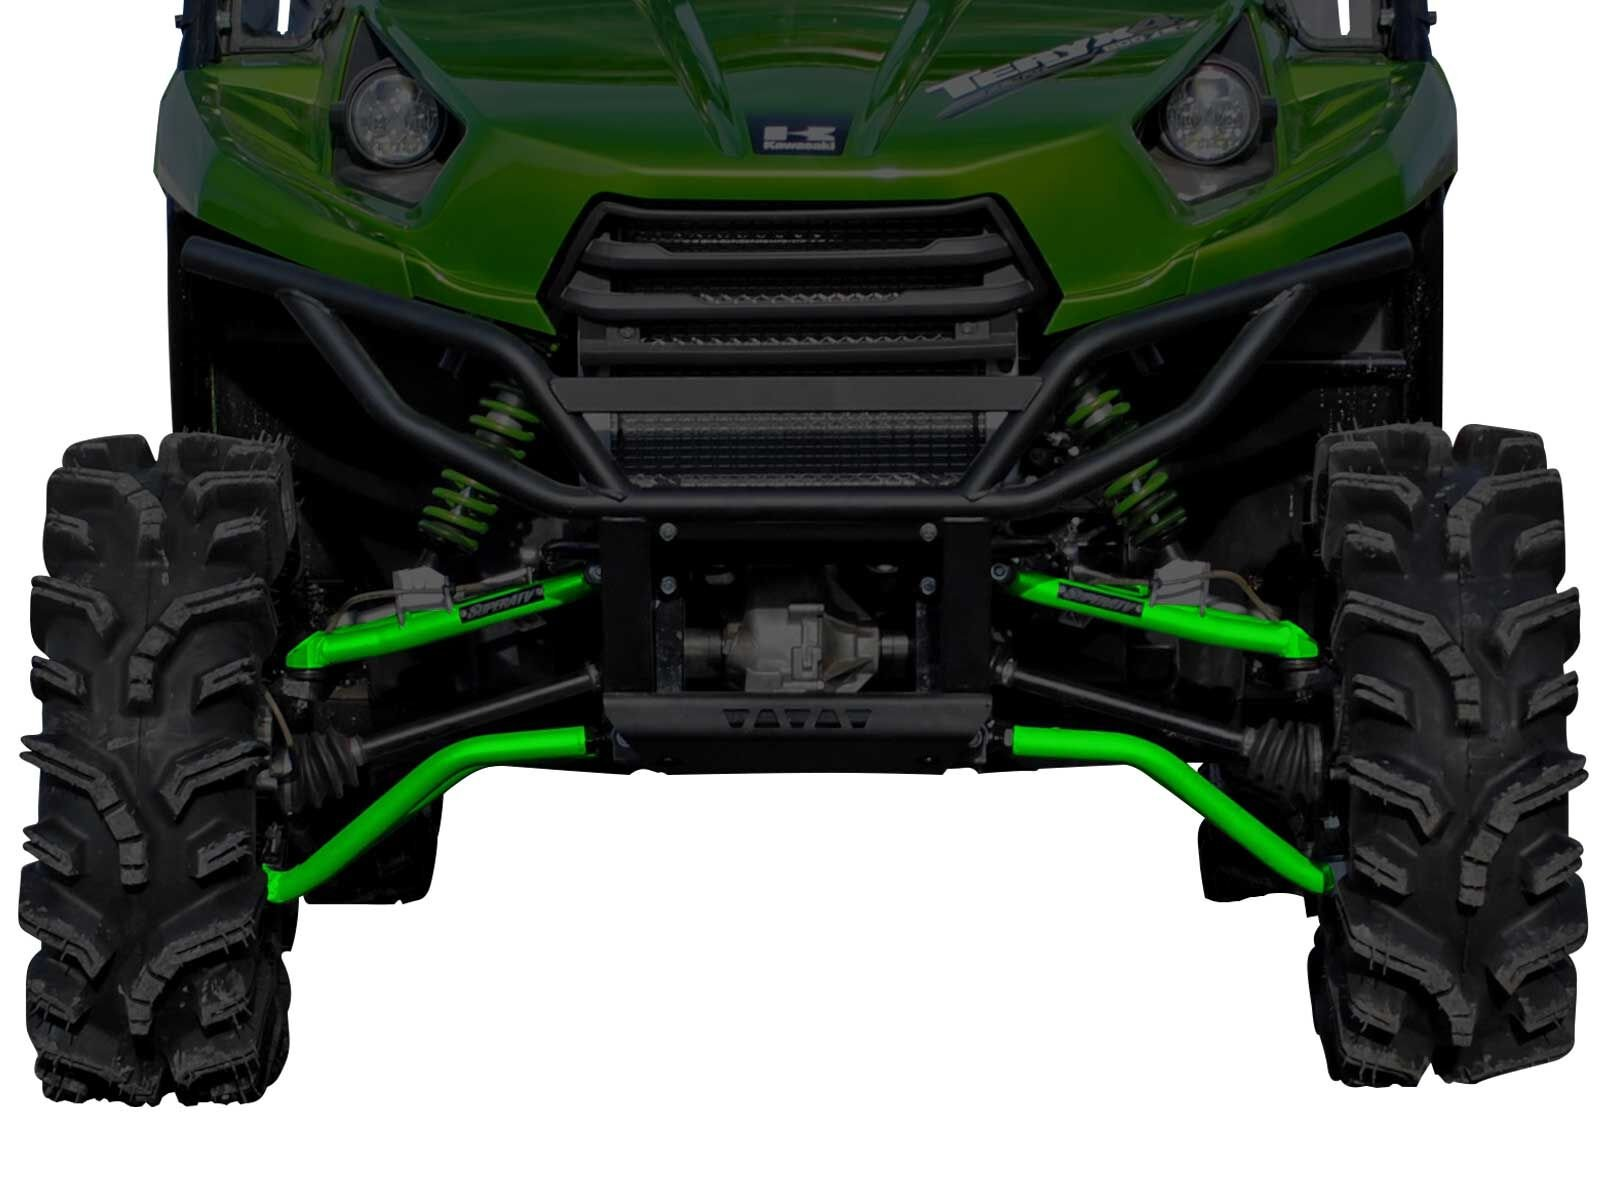 SuperATV High Clearance Forward Offset Front A-Arms for Kawasaki Teryx/Teryx 4 (See Fitment) - Green by SuperATV.com (Image #1)